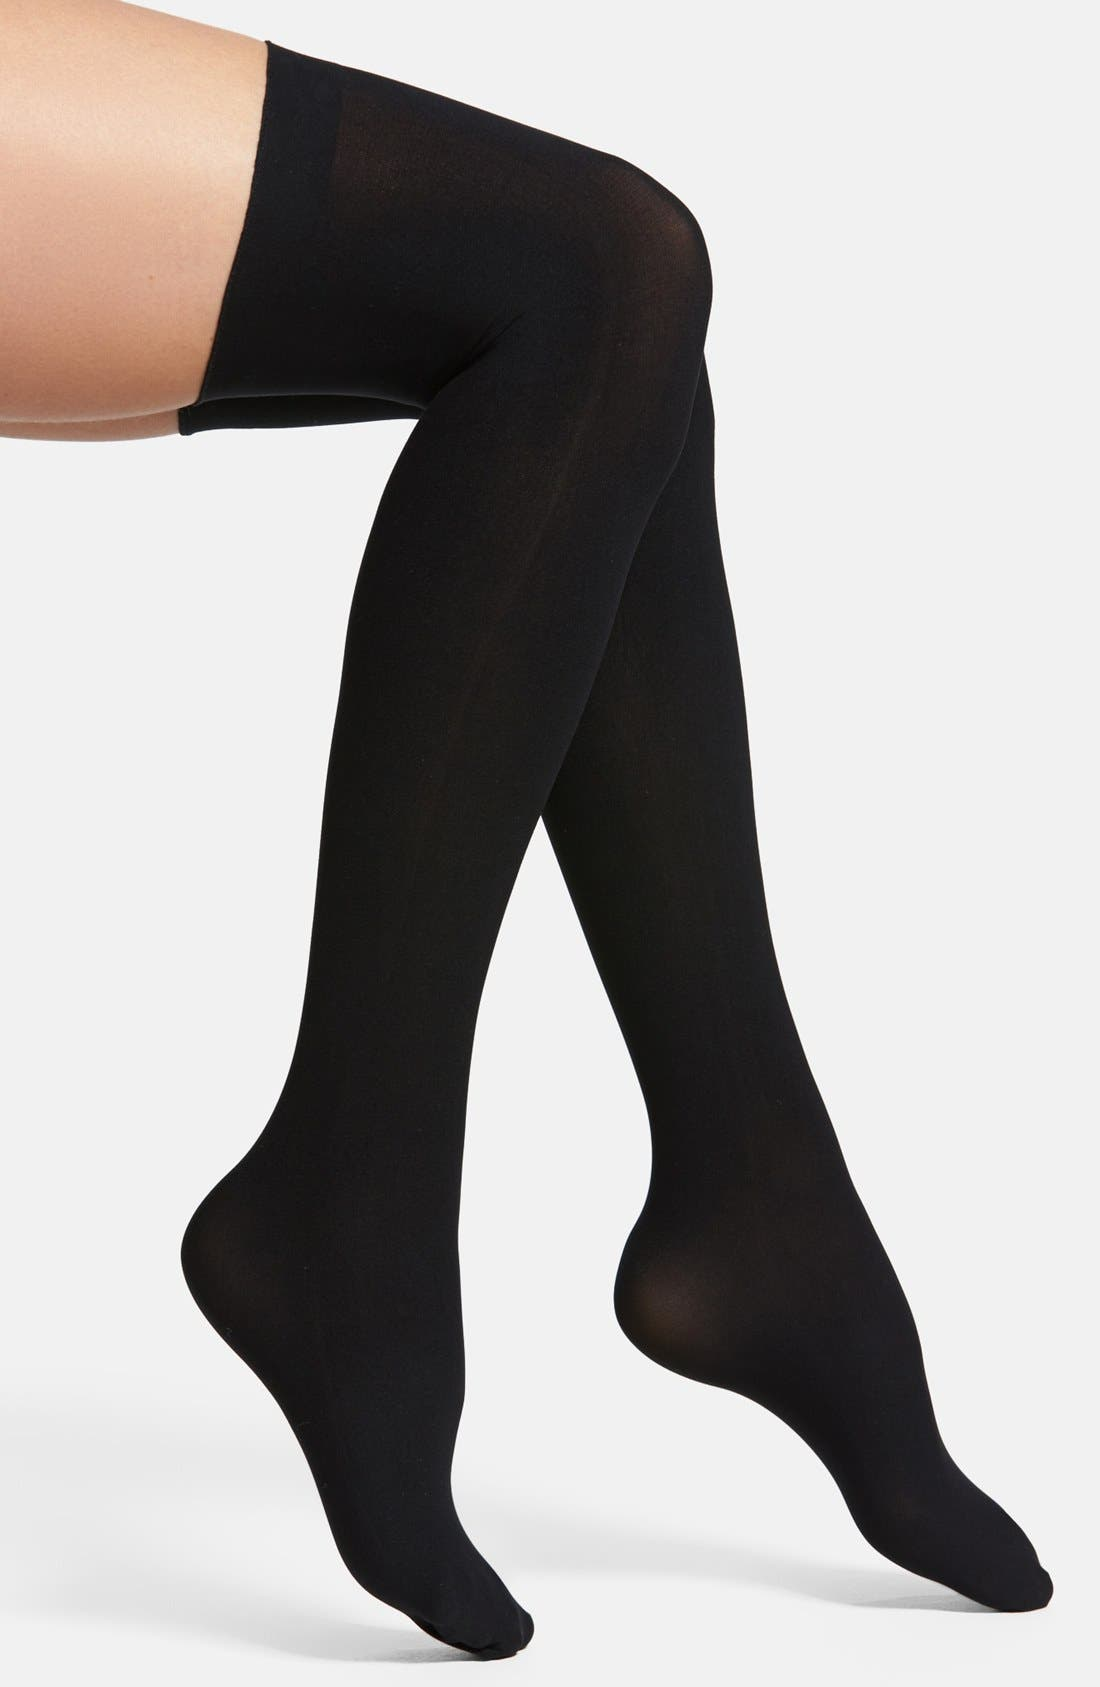 Main Image - Commando Up All Night Thigh High Socks